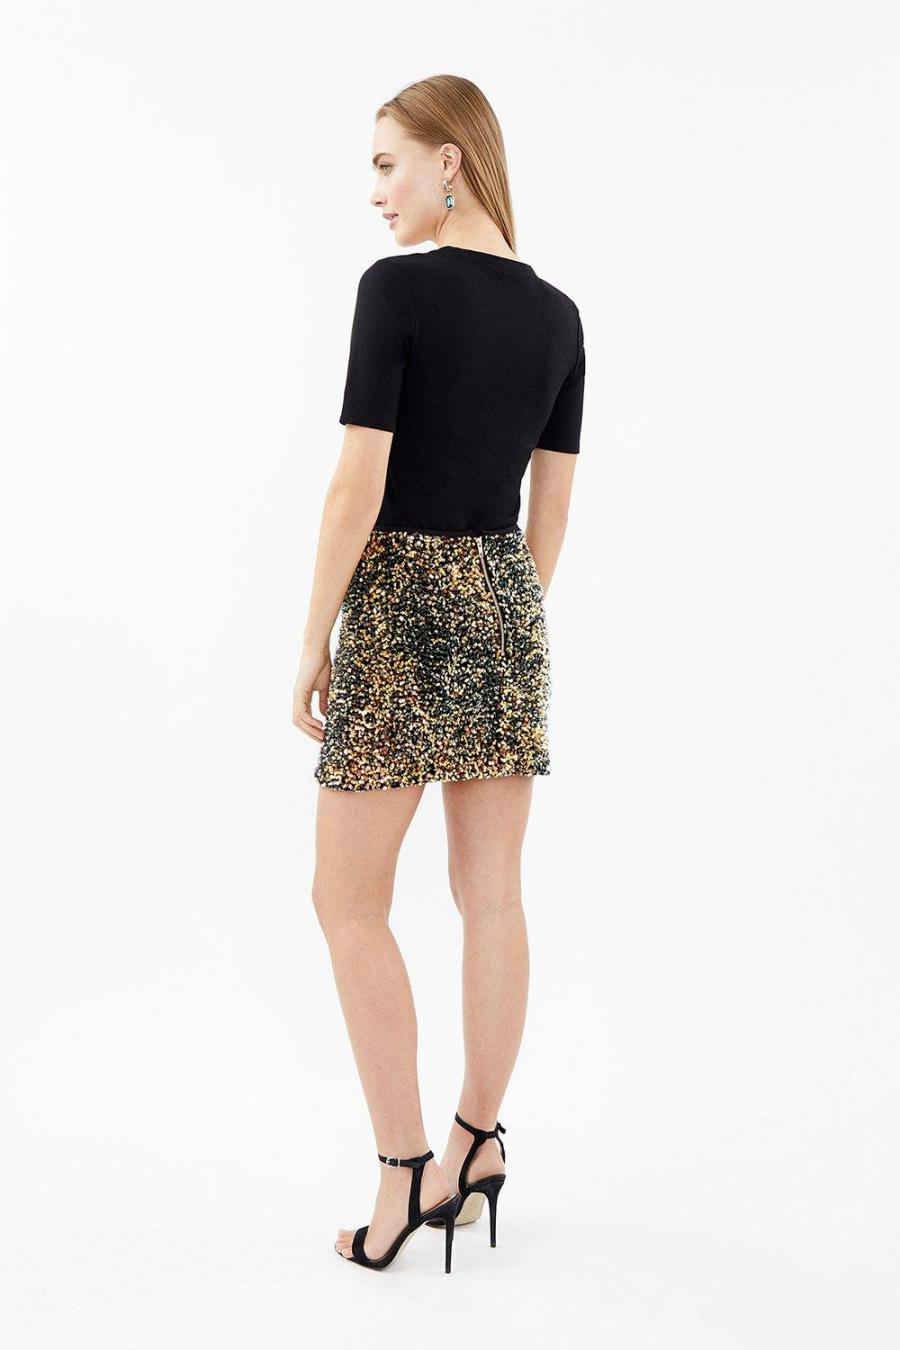 Coast Mini Skirts | Womens Sequin Mini Skirt Black